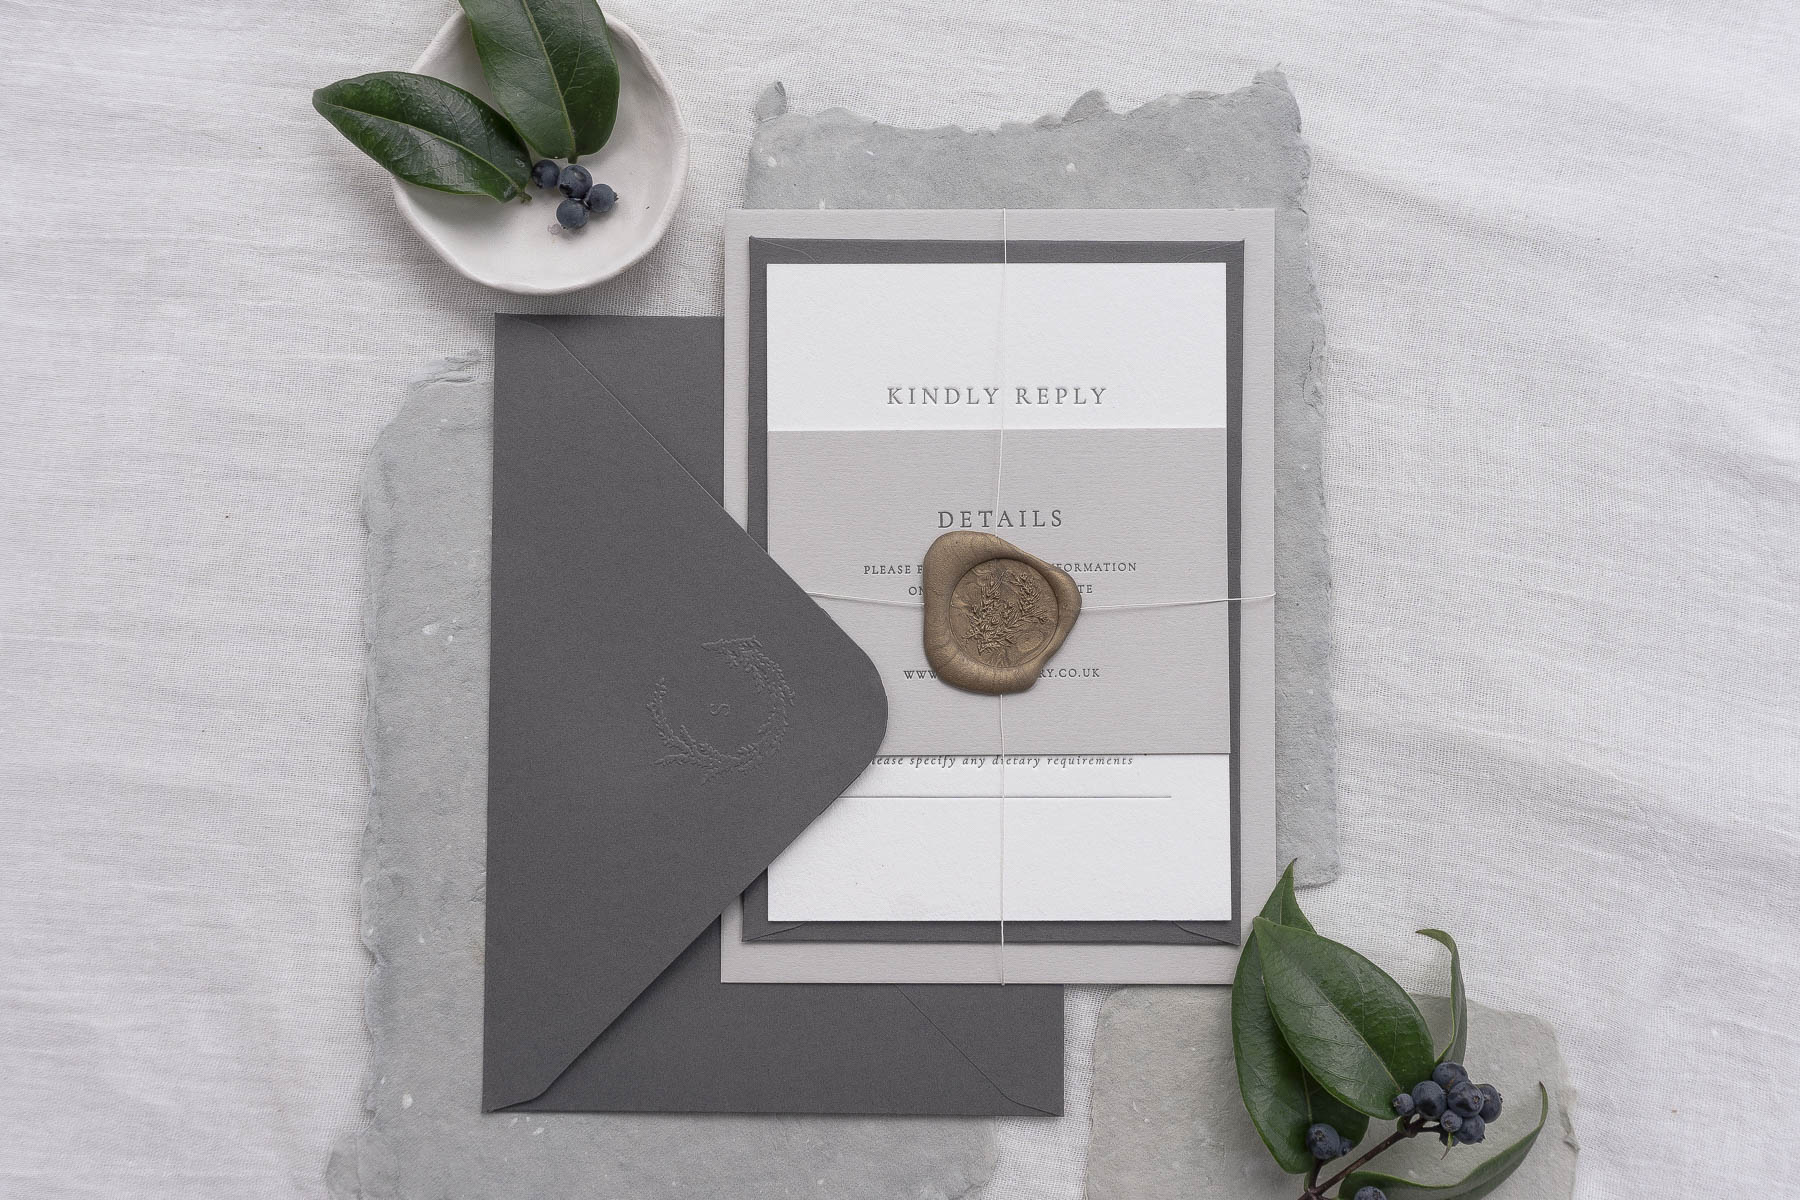 letterpress wedding invitation wax seal wreath monogram emboss deboss simple modern classic grey